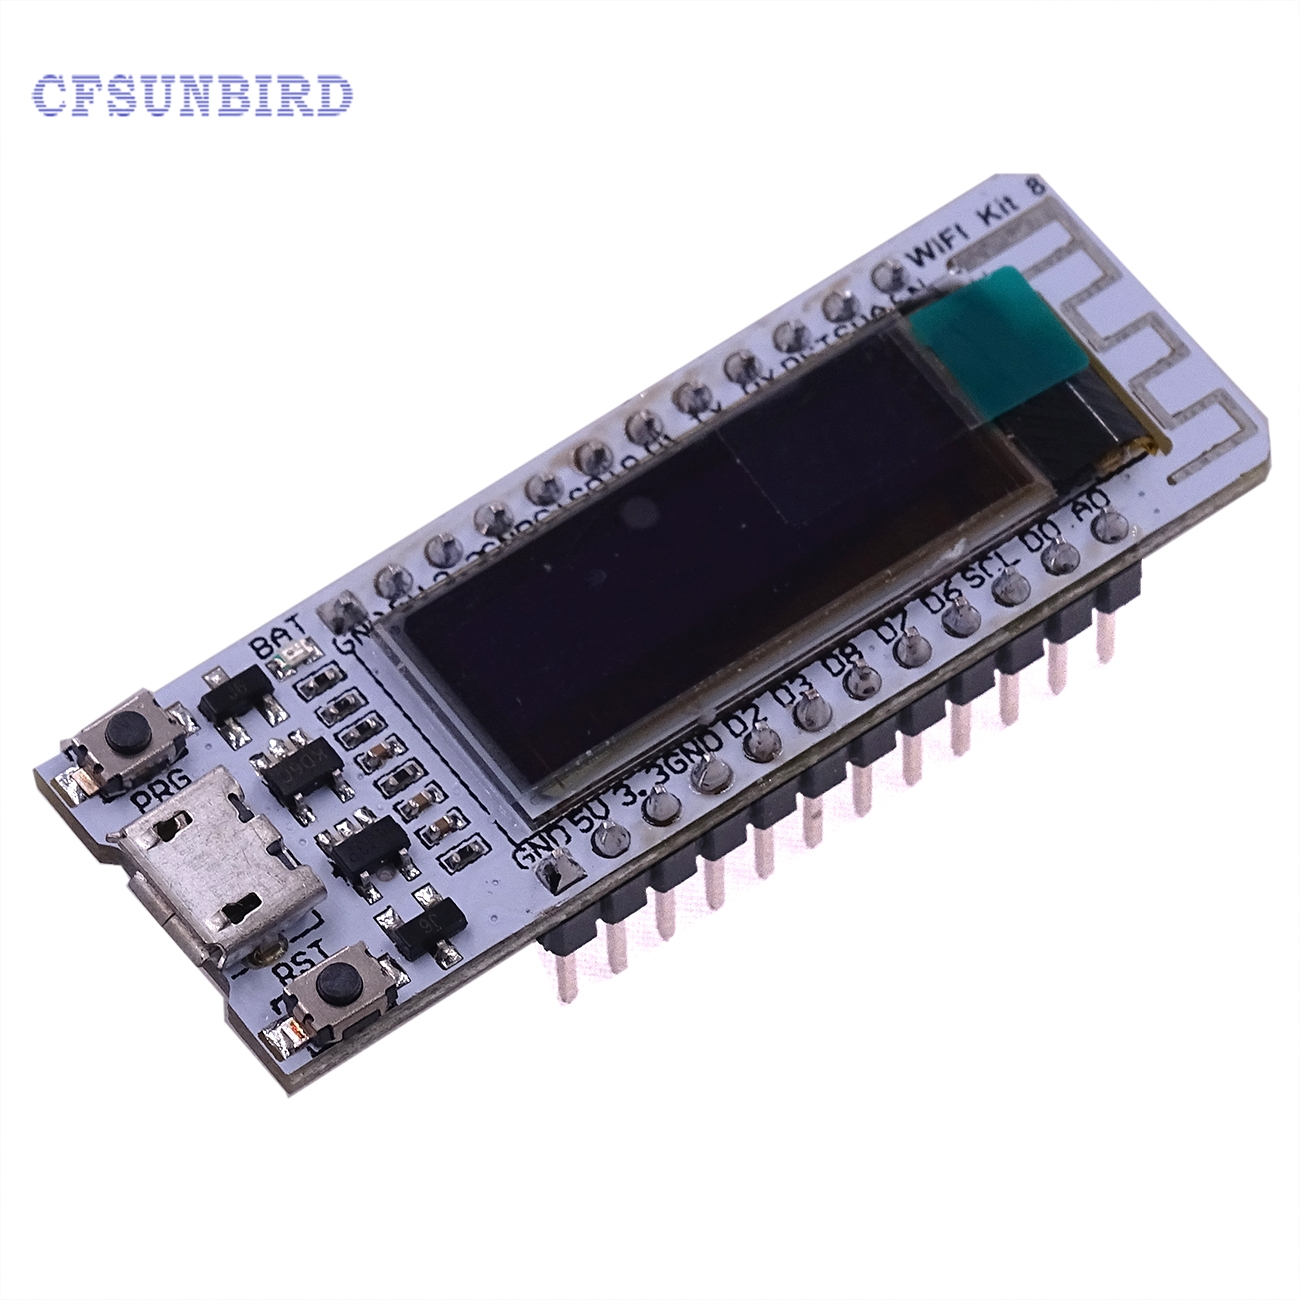 1pcs ESP8266 WIFI Chip 0.91 inch OLED CP2014 32Mb Flash ESP 8266 Module Internet of things Board PCB for NodeMcu for Arduino